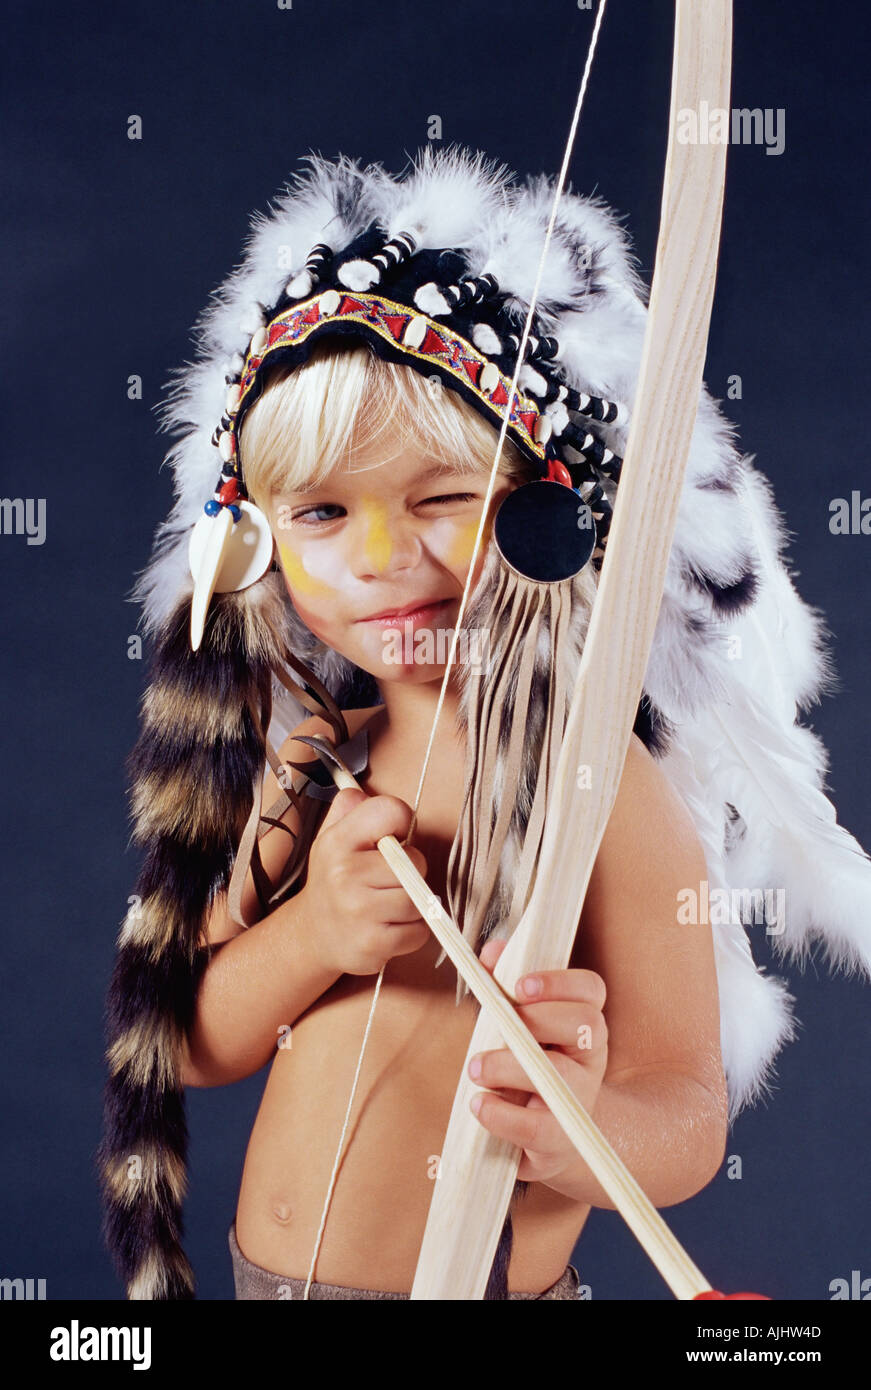 Boy in native american costume - Stock Image